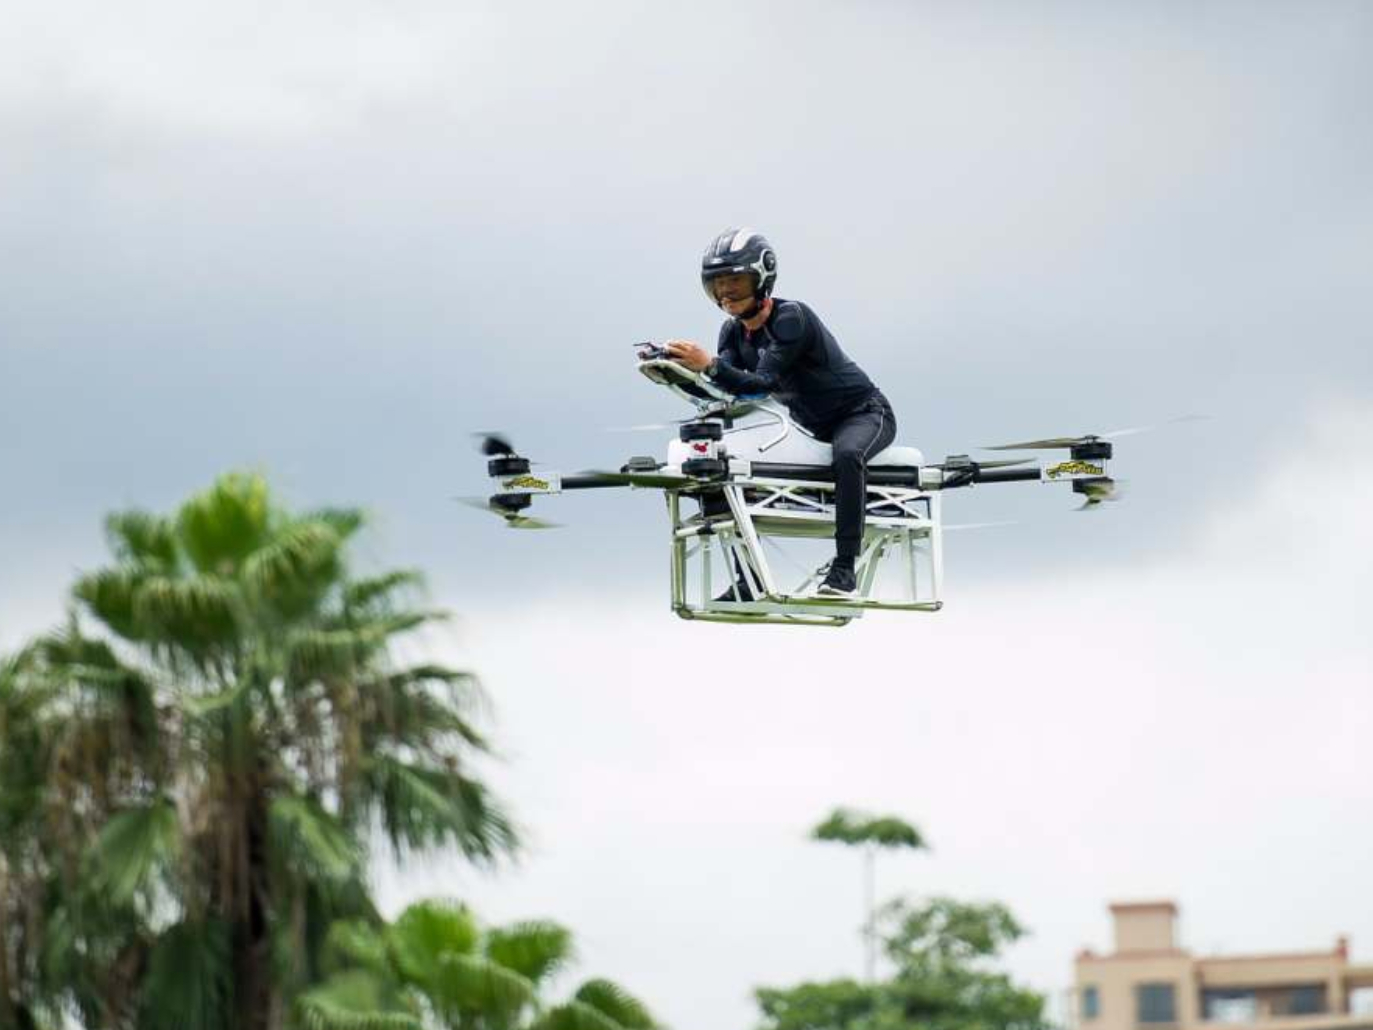 Chinese entrepreneur develops manned aircraft in Dongguan